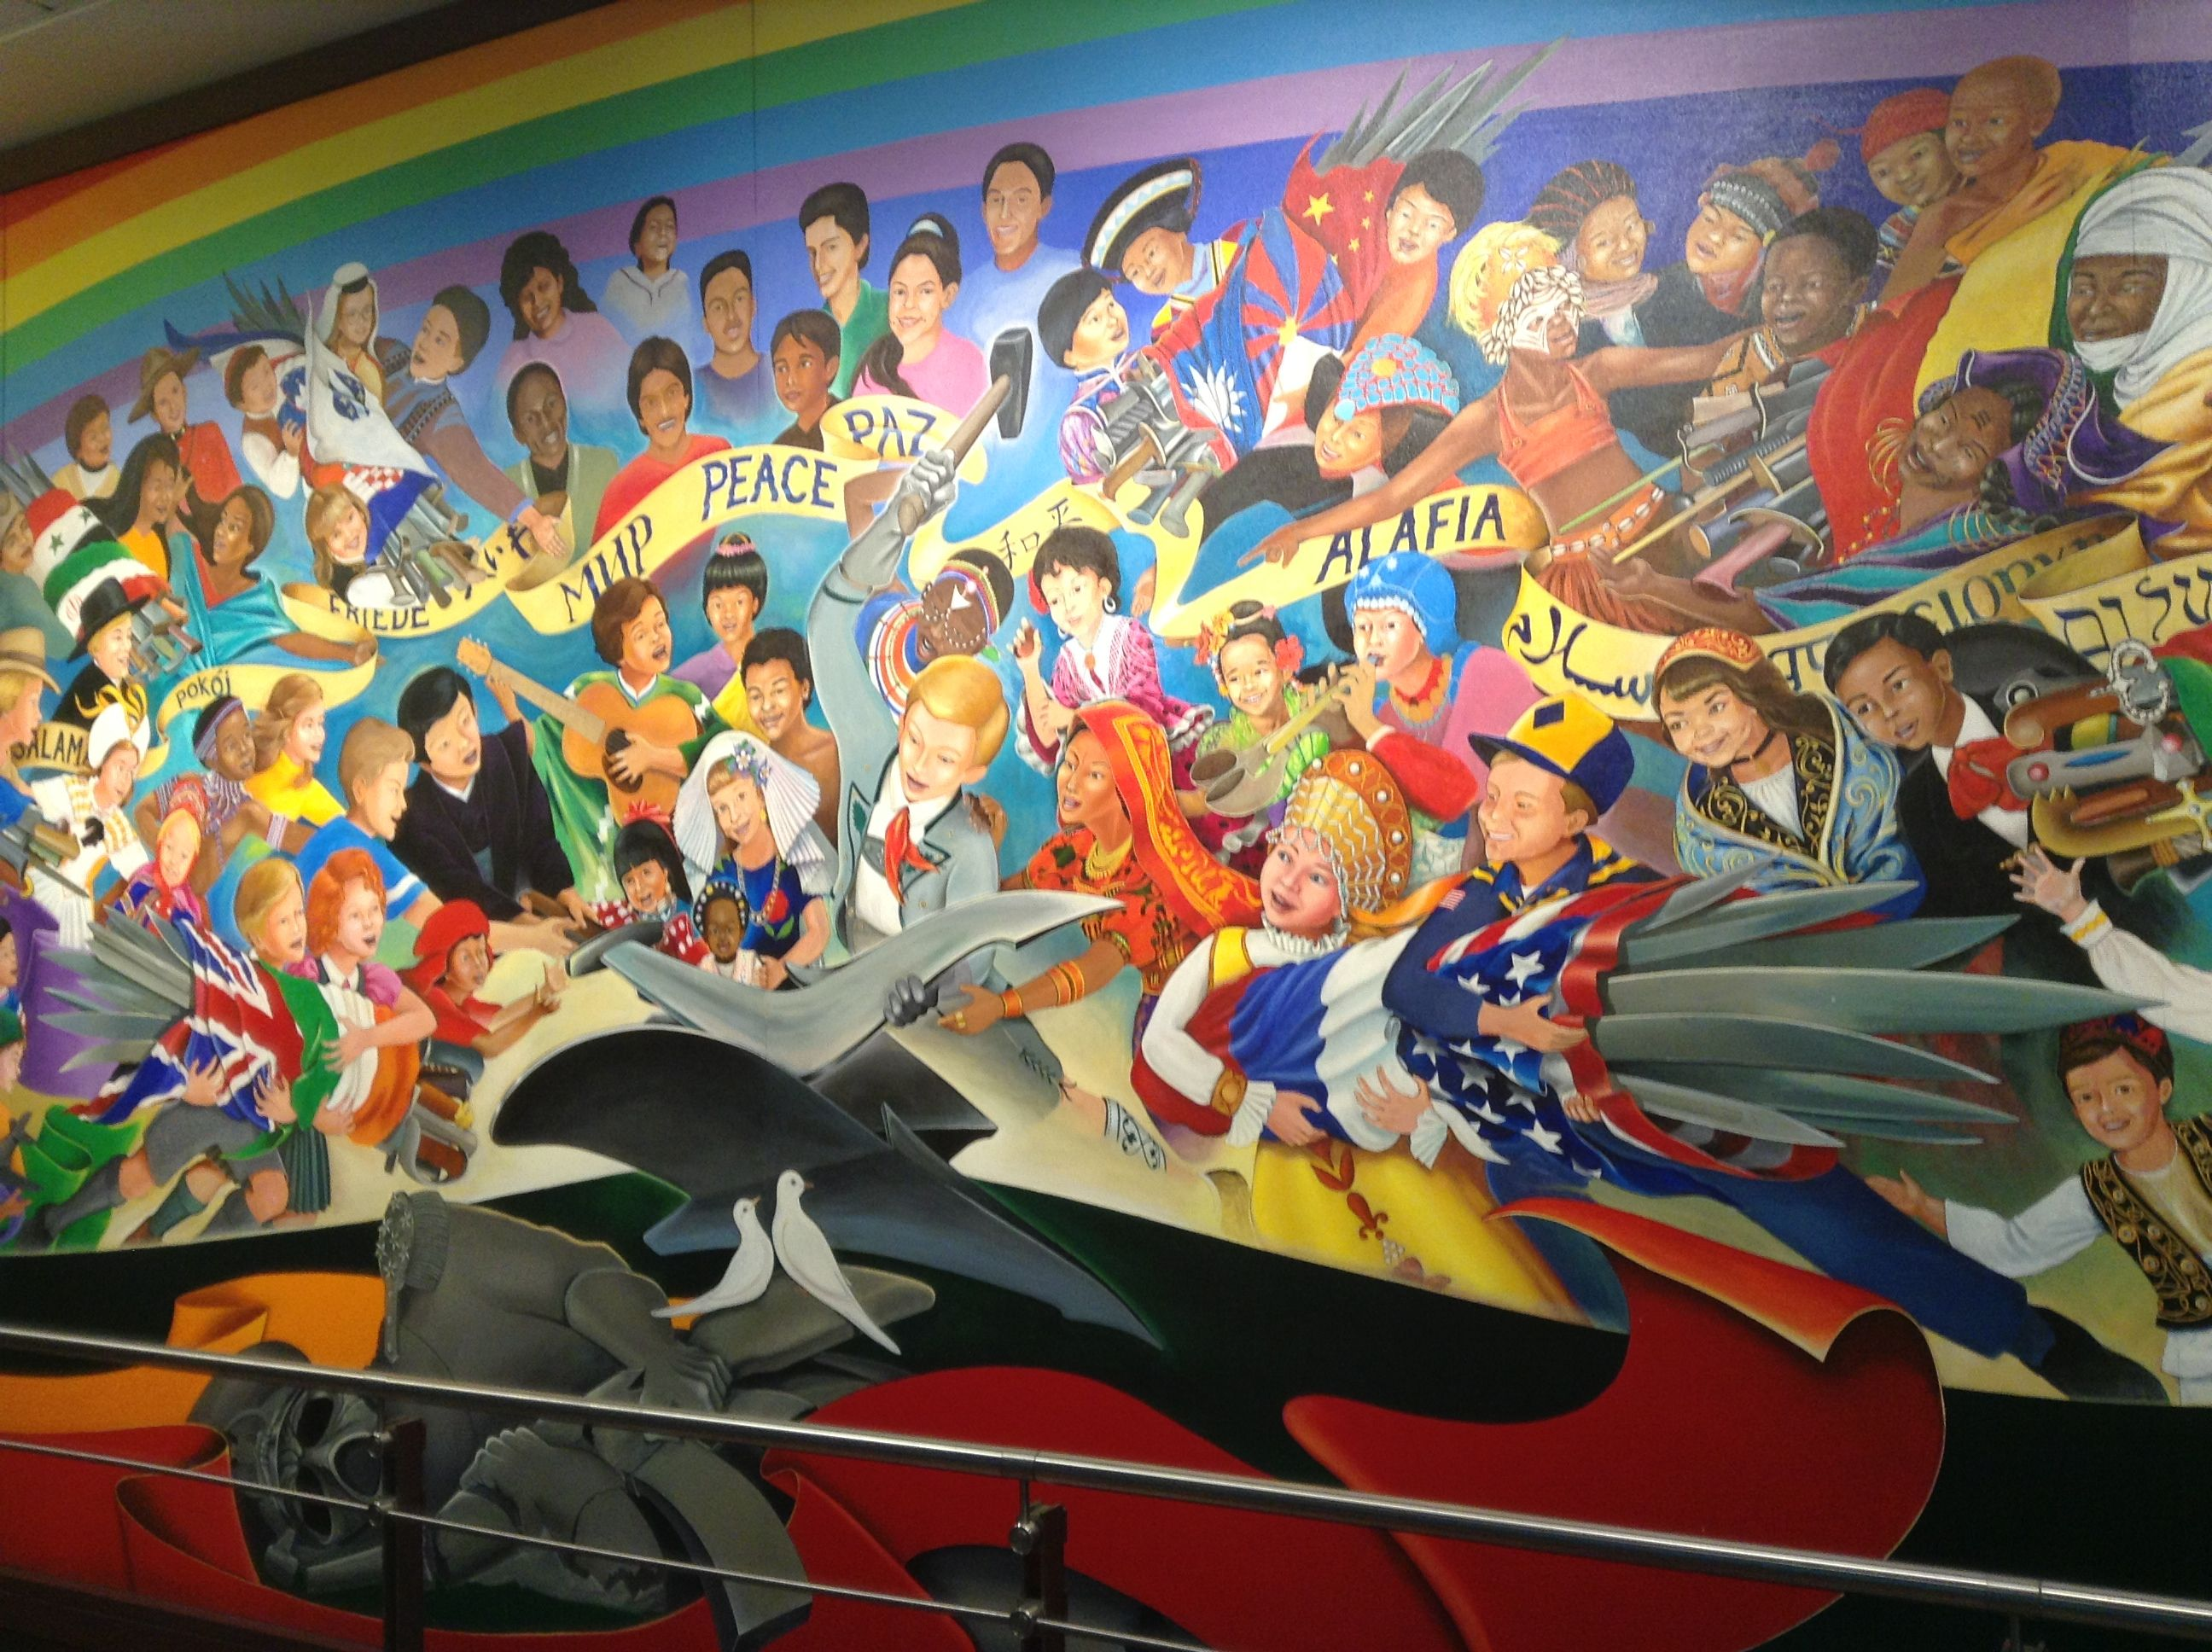 Denver Airport Wall Murals Ever Seen This Interesting Mural In The Denver Airport